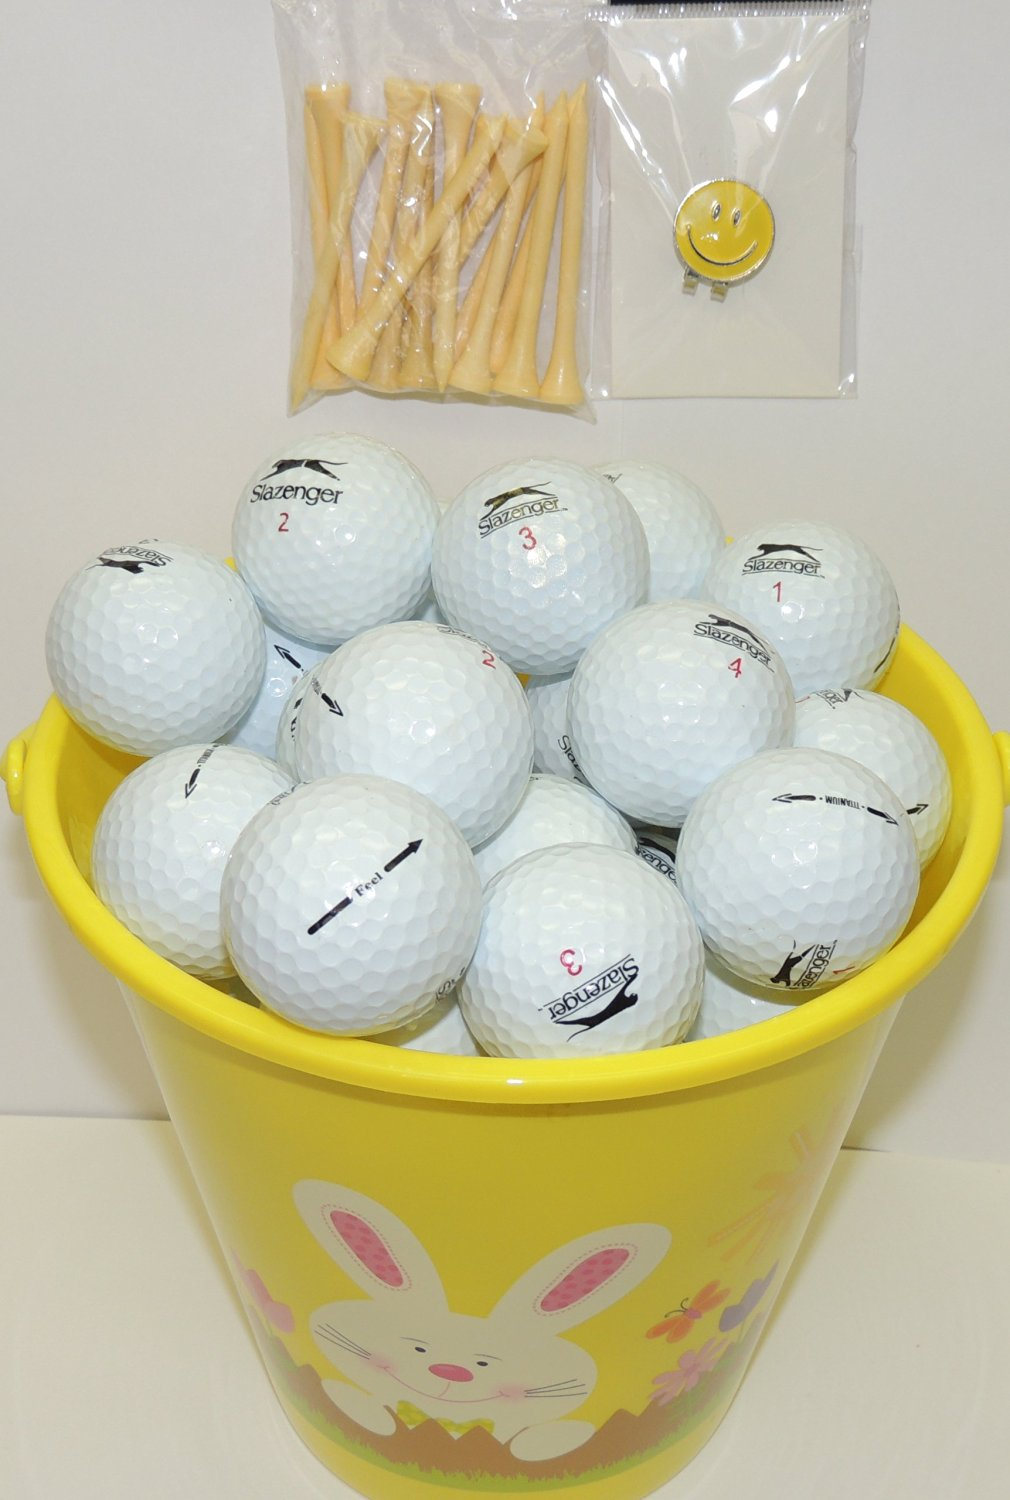 067bbfcf0e Get Quotations · Yellow Easter Pail With 48 Recycled Slazenger Golf Balls &  Tee's & Smiley Face Magnetic Golf